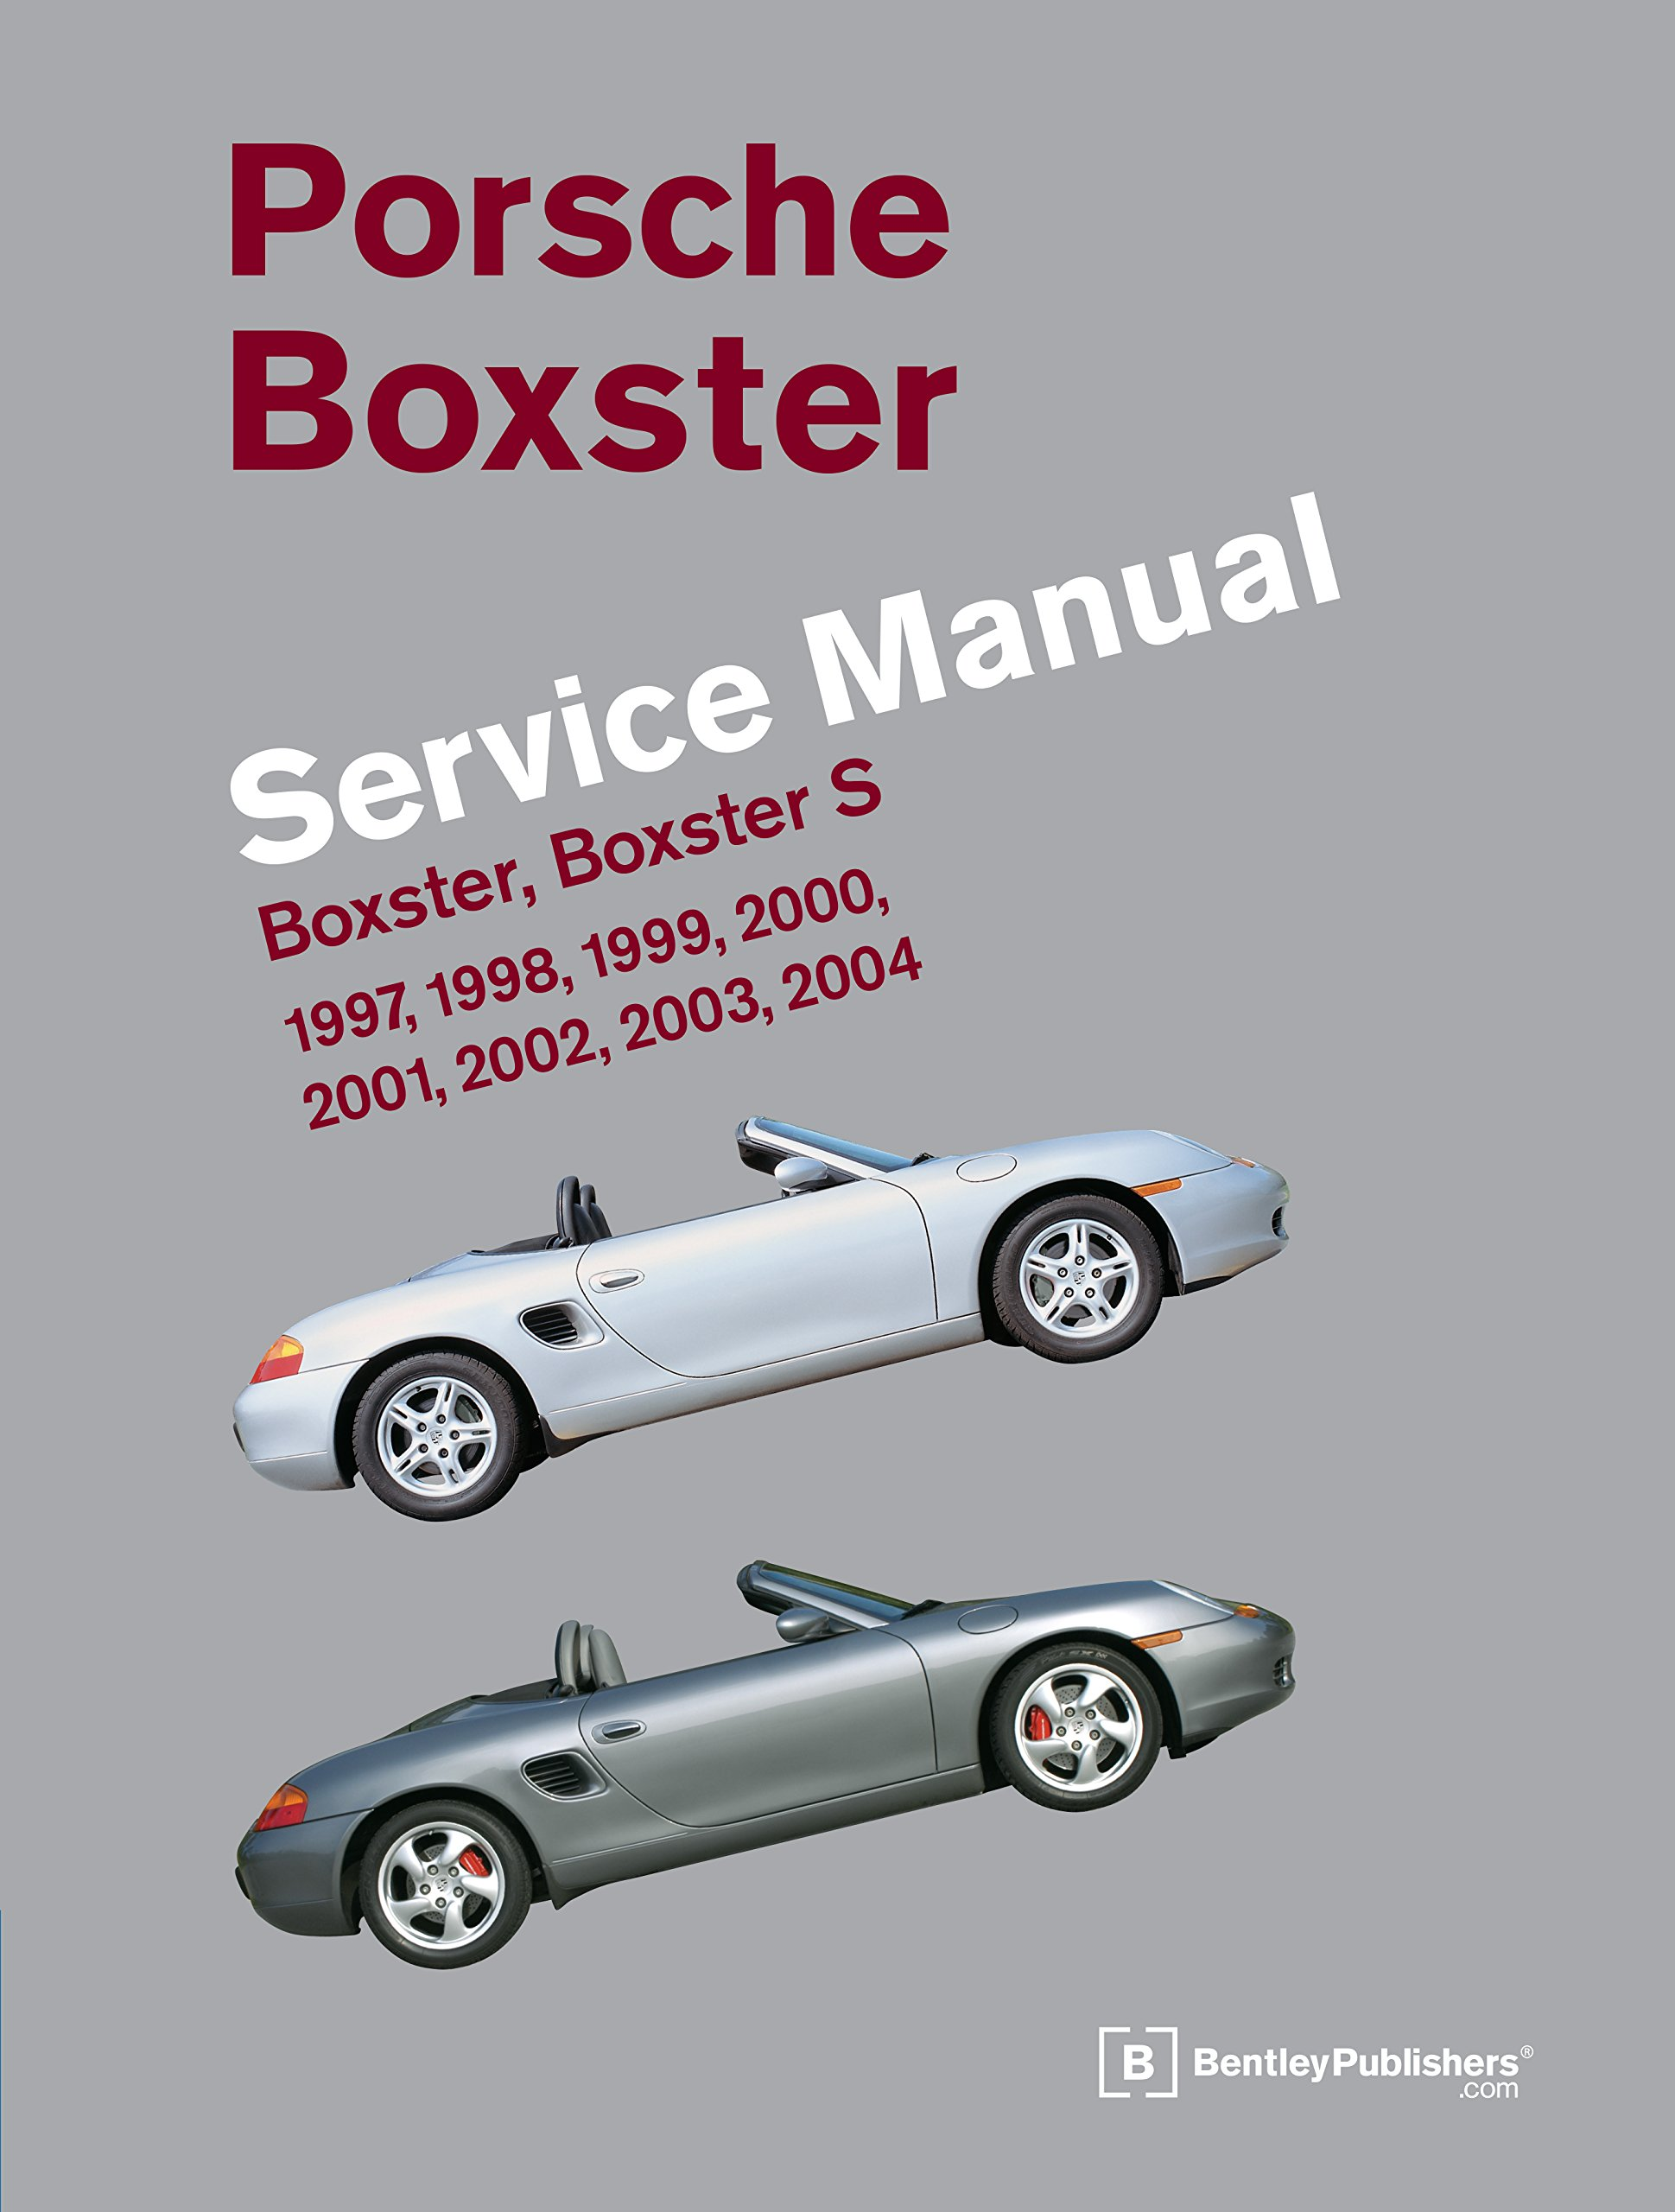 Porsche Boxster, Boxster S Service Manual 1997-2004: Amazon.co.uk: Bentley  Publishers: 9780837616452: Books